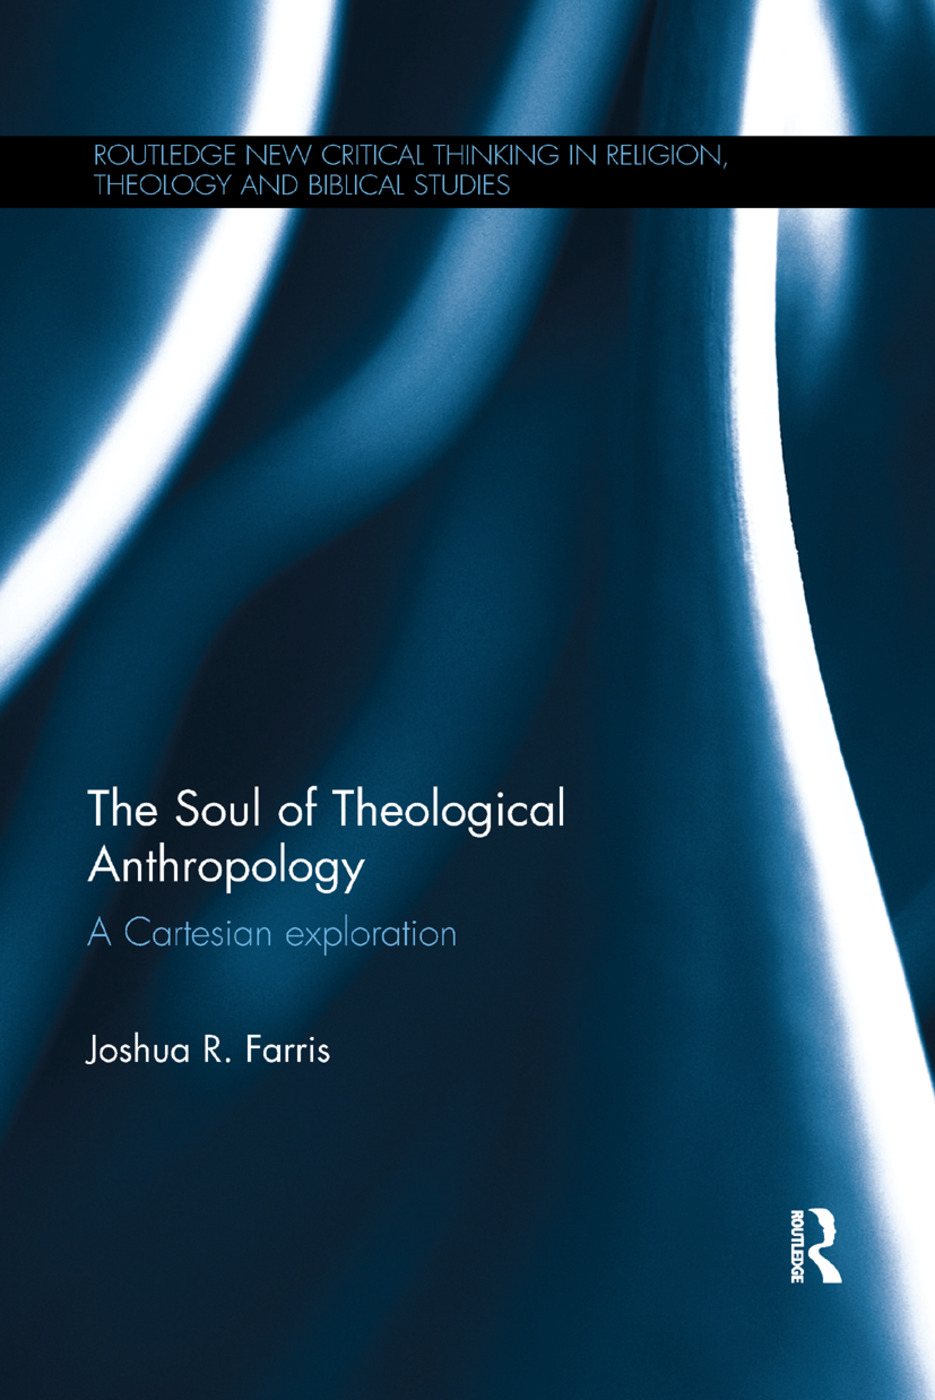 The Soul of Theological Anthropology: A Cartesian Exploration book cover